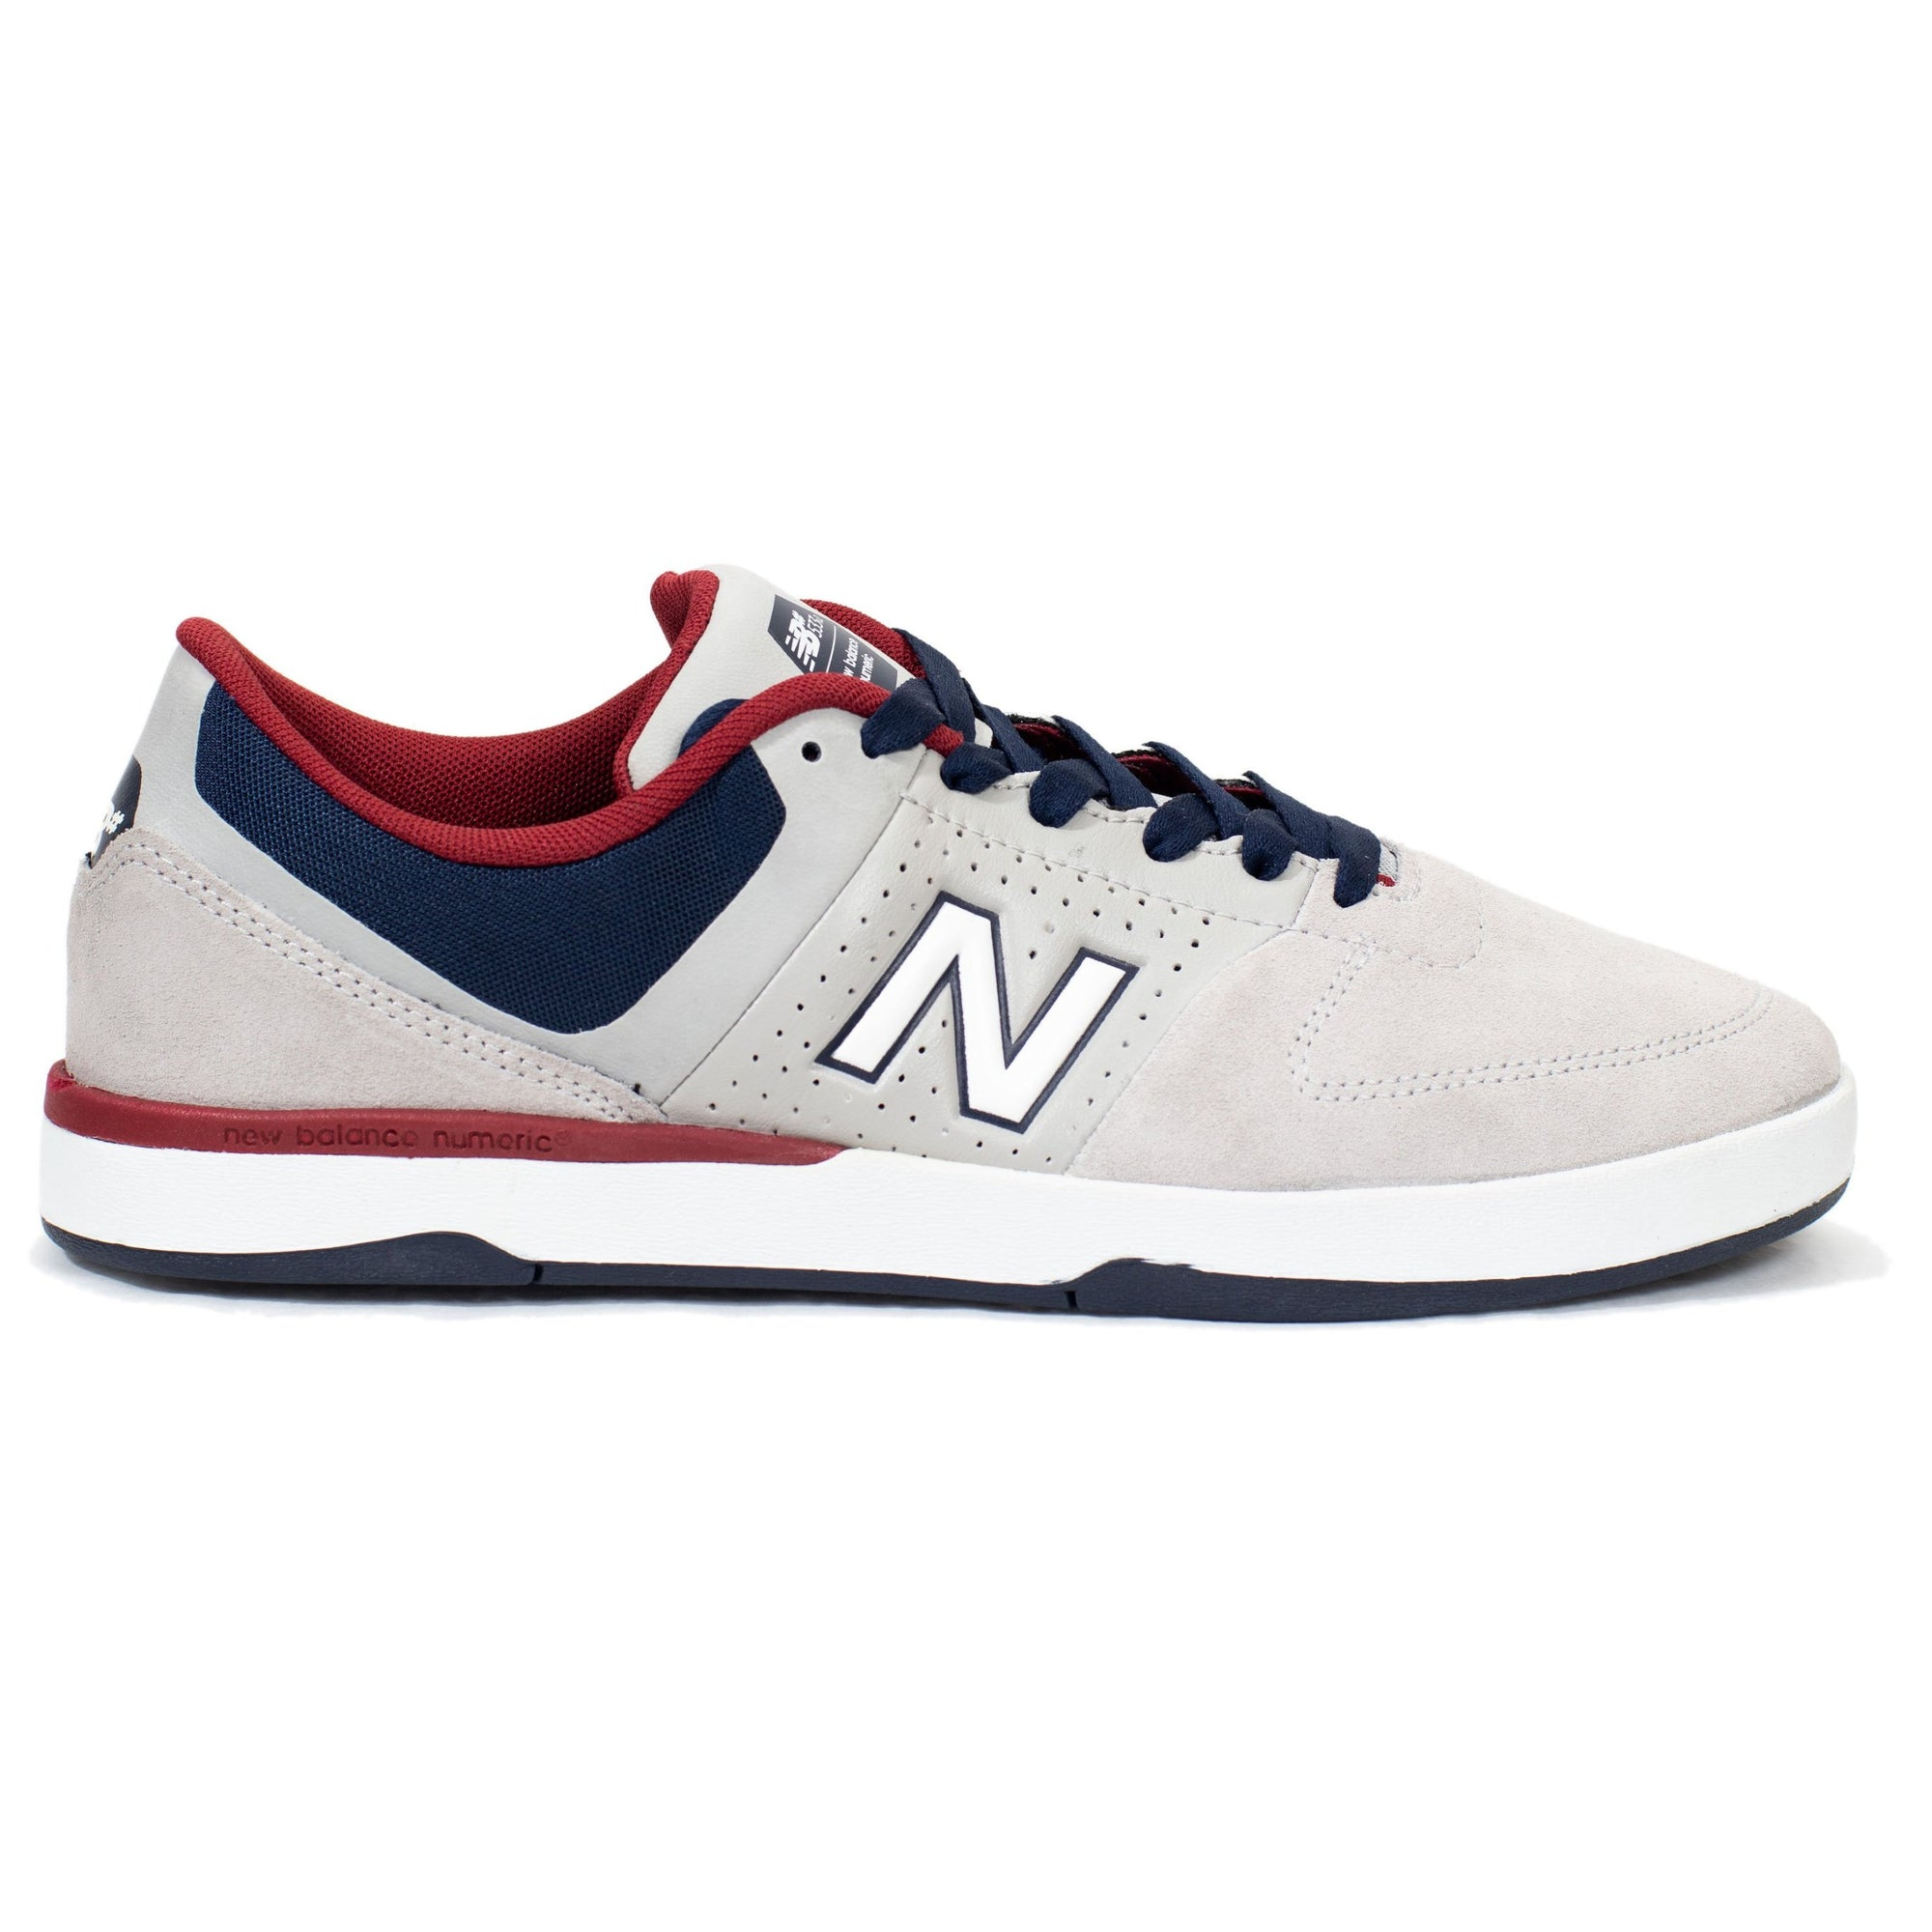 cdf502316c3b New Balance Numeric PJ Stratford 533 v2 - Grey Blue Red (SS2) - Chane